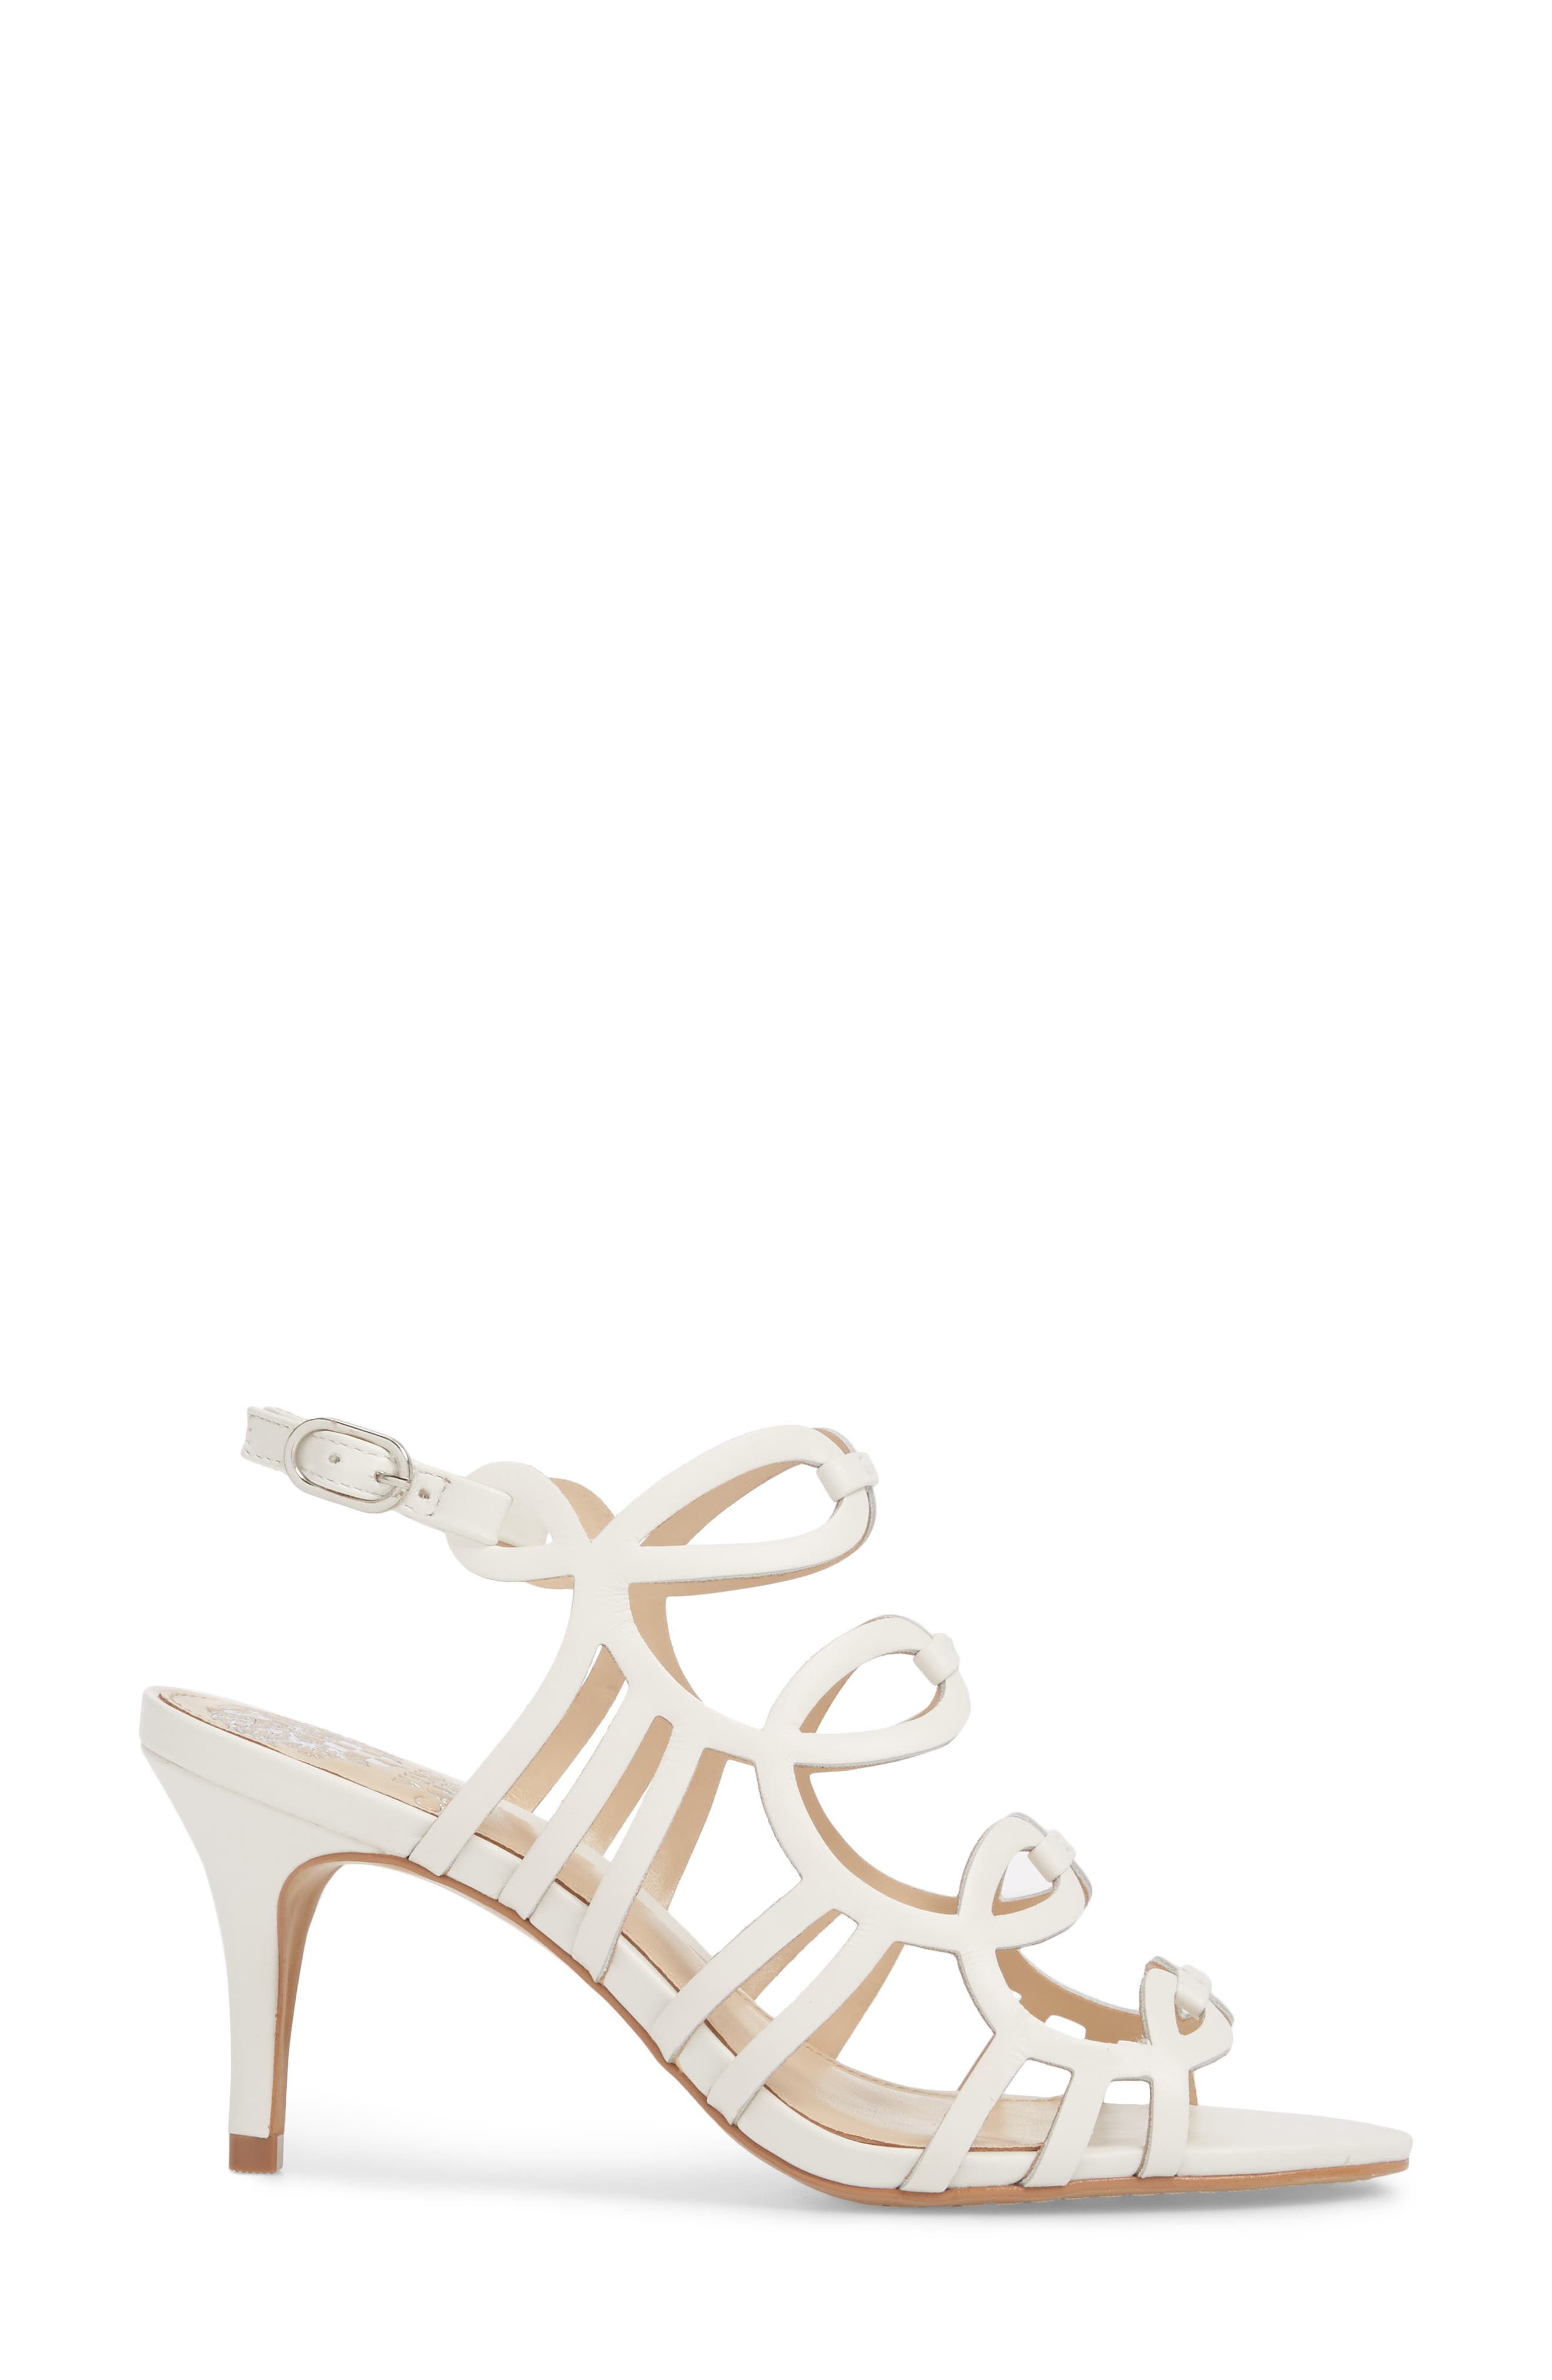 Petina Sandal,                             Alternate thumbnail 3, color,                             WHITE LEATHER